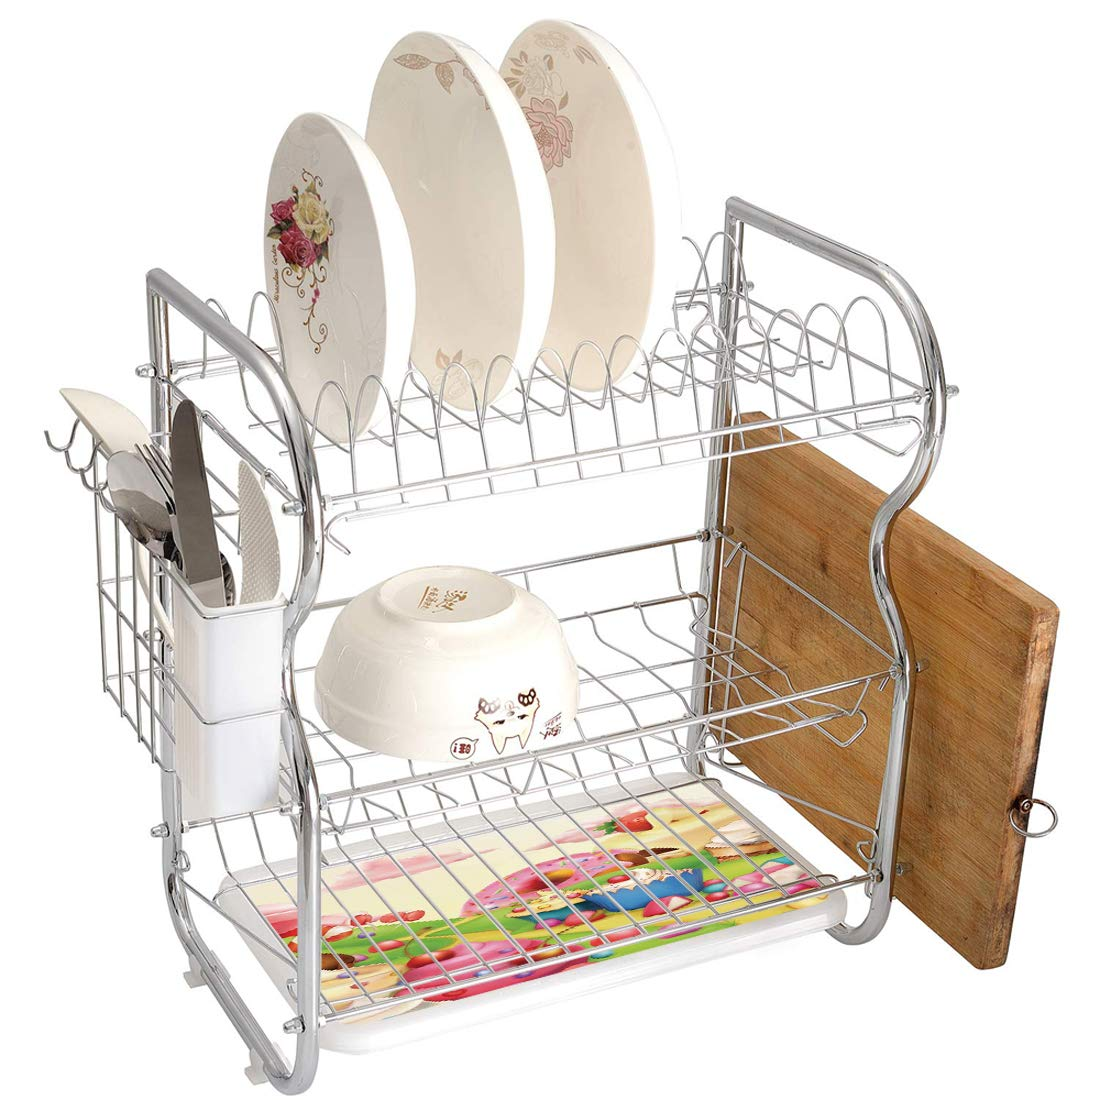 Stainless Steel 3-Tier Dish Drainer Rack Modern Kitchen Drying Drip Tray Cutlery Holder Yummy Donuts Sweet Land Cupcakes Ice Cream Cotton Candy Clouds Kids Nursery Design,Multicolor,Storage Space Save by Smallgrid